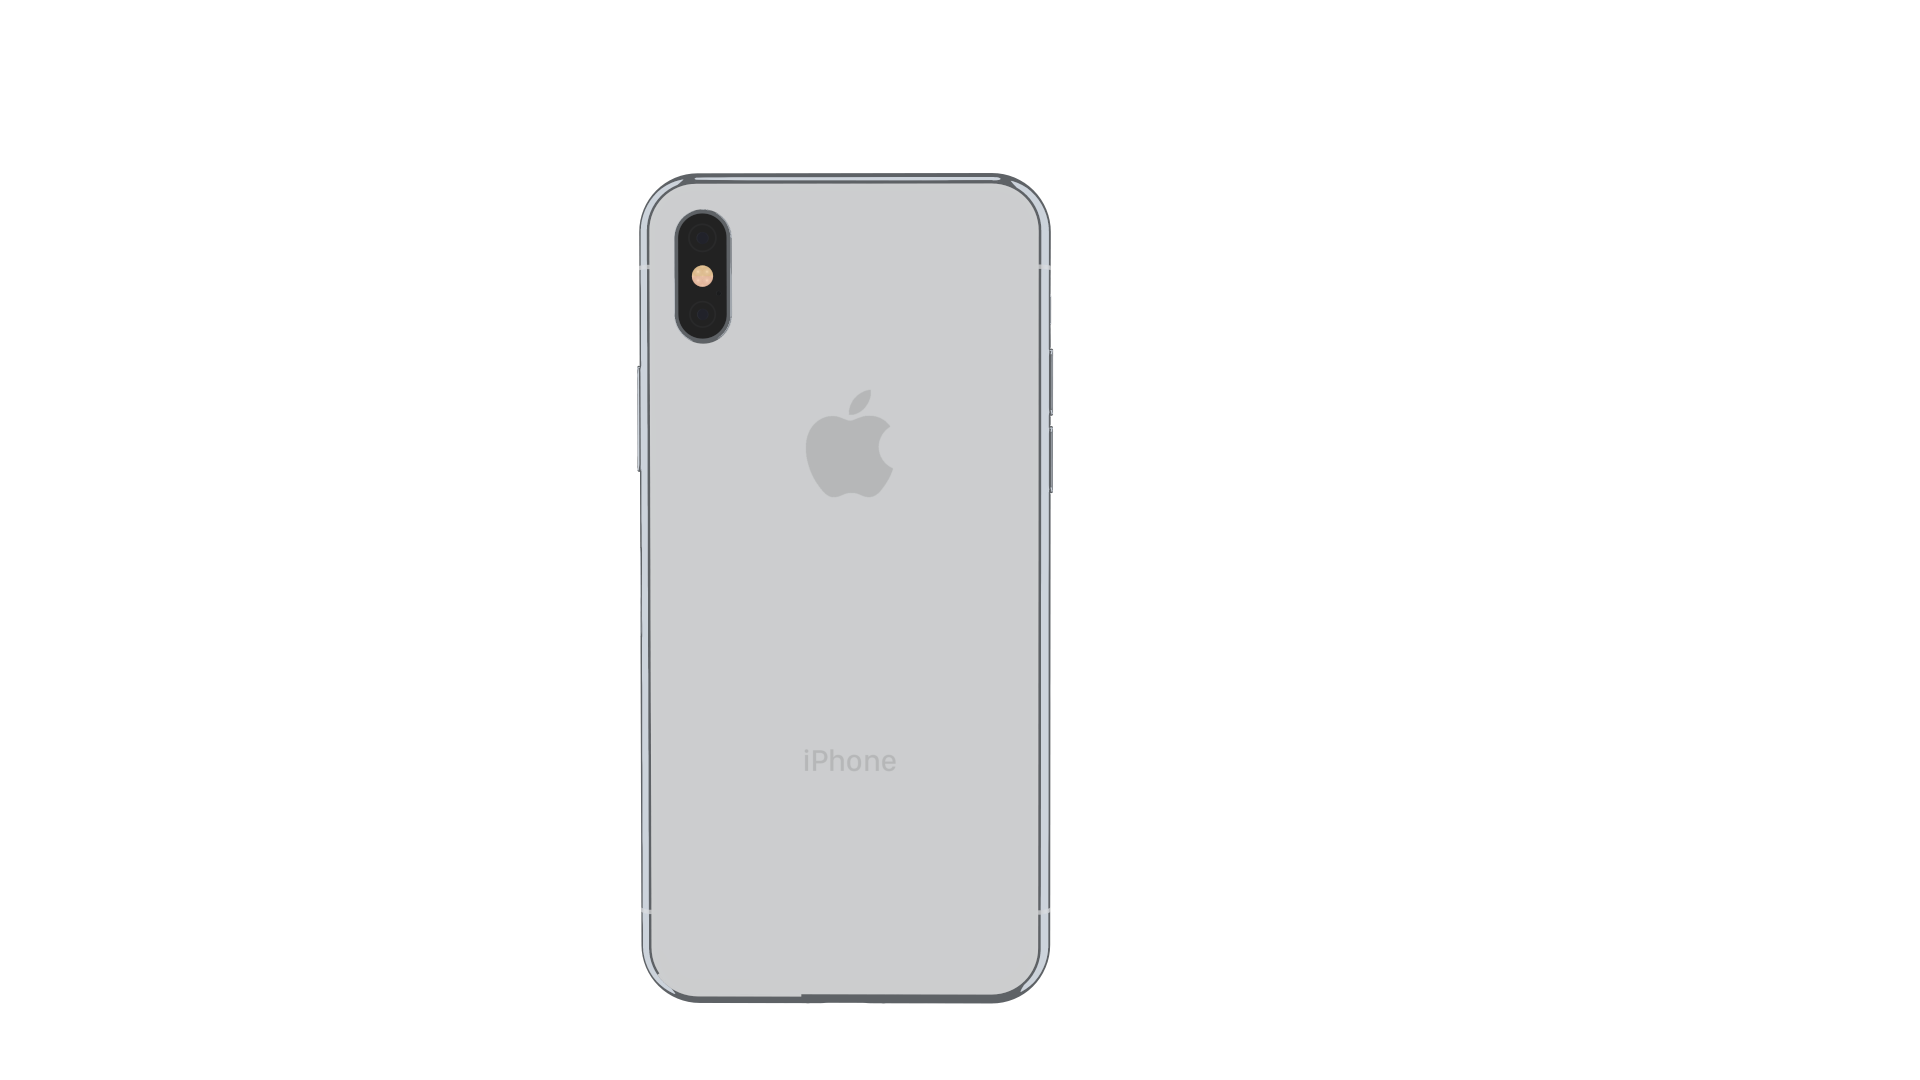 Iphone X Pictures Transparent PNG Pictures